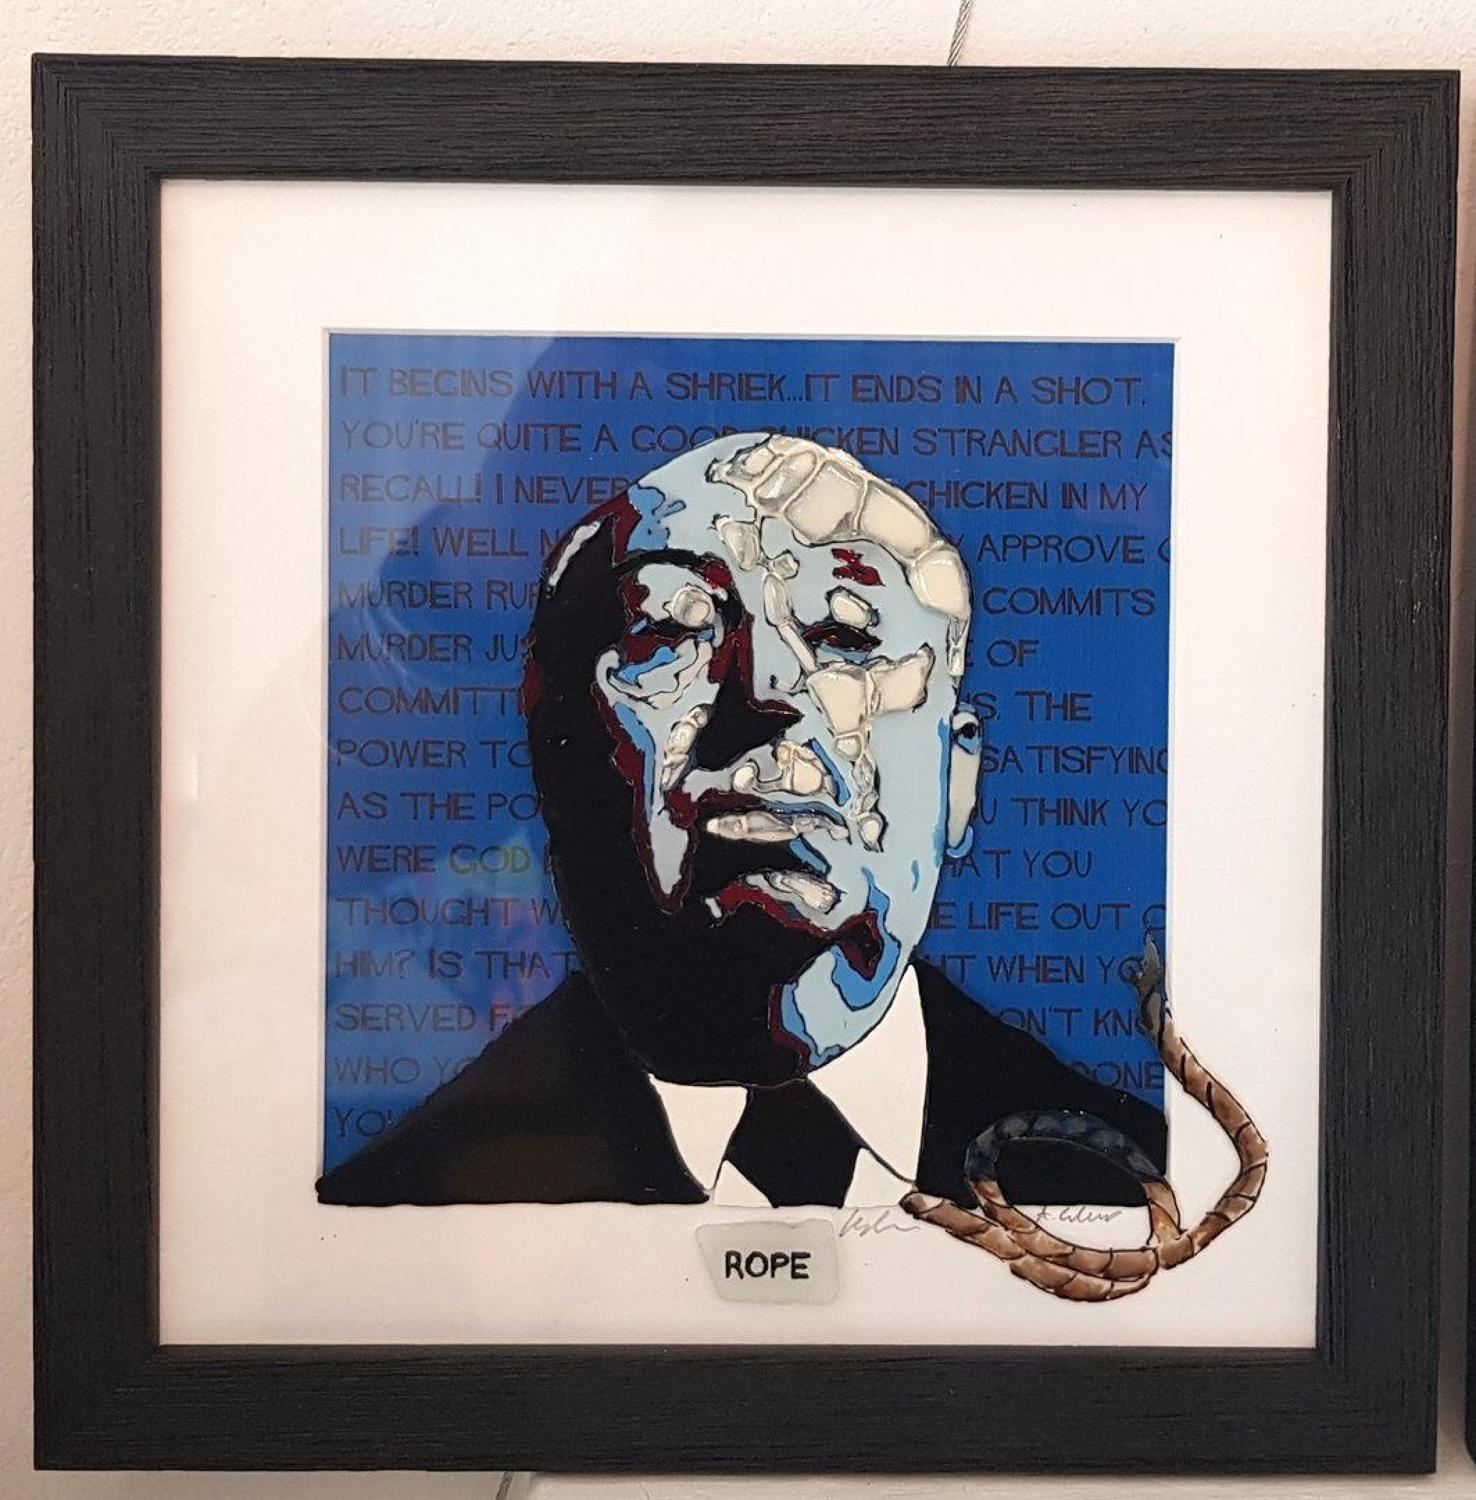 Hitchcock - Rope by Sea On Glass Framed Art